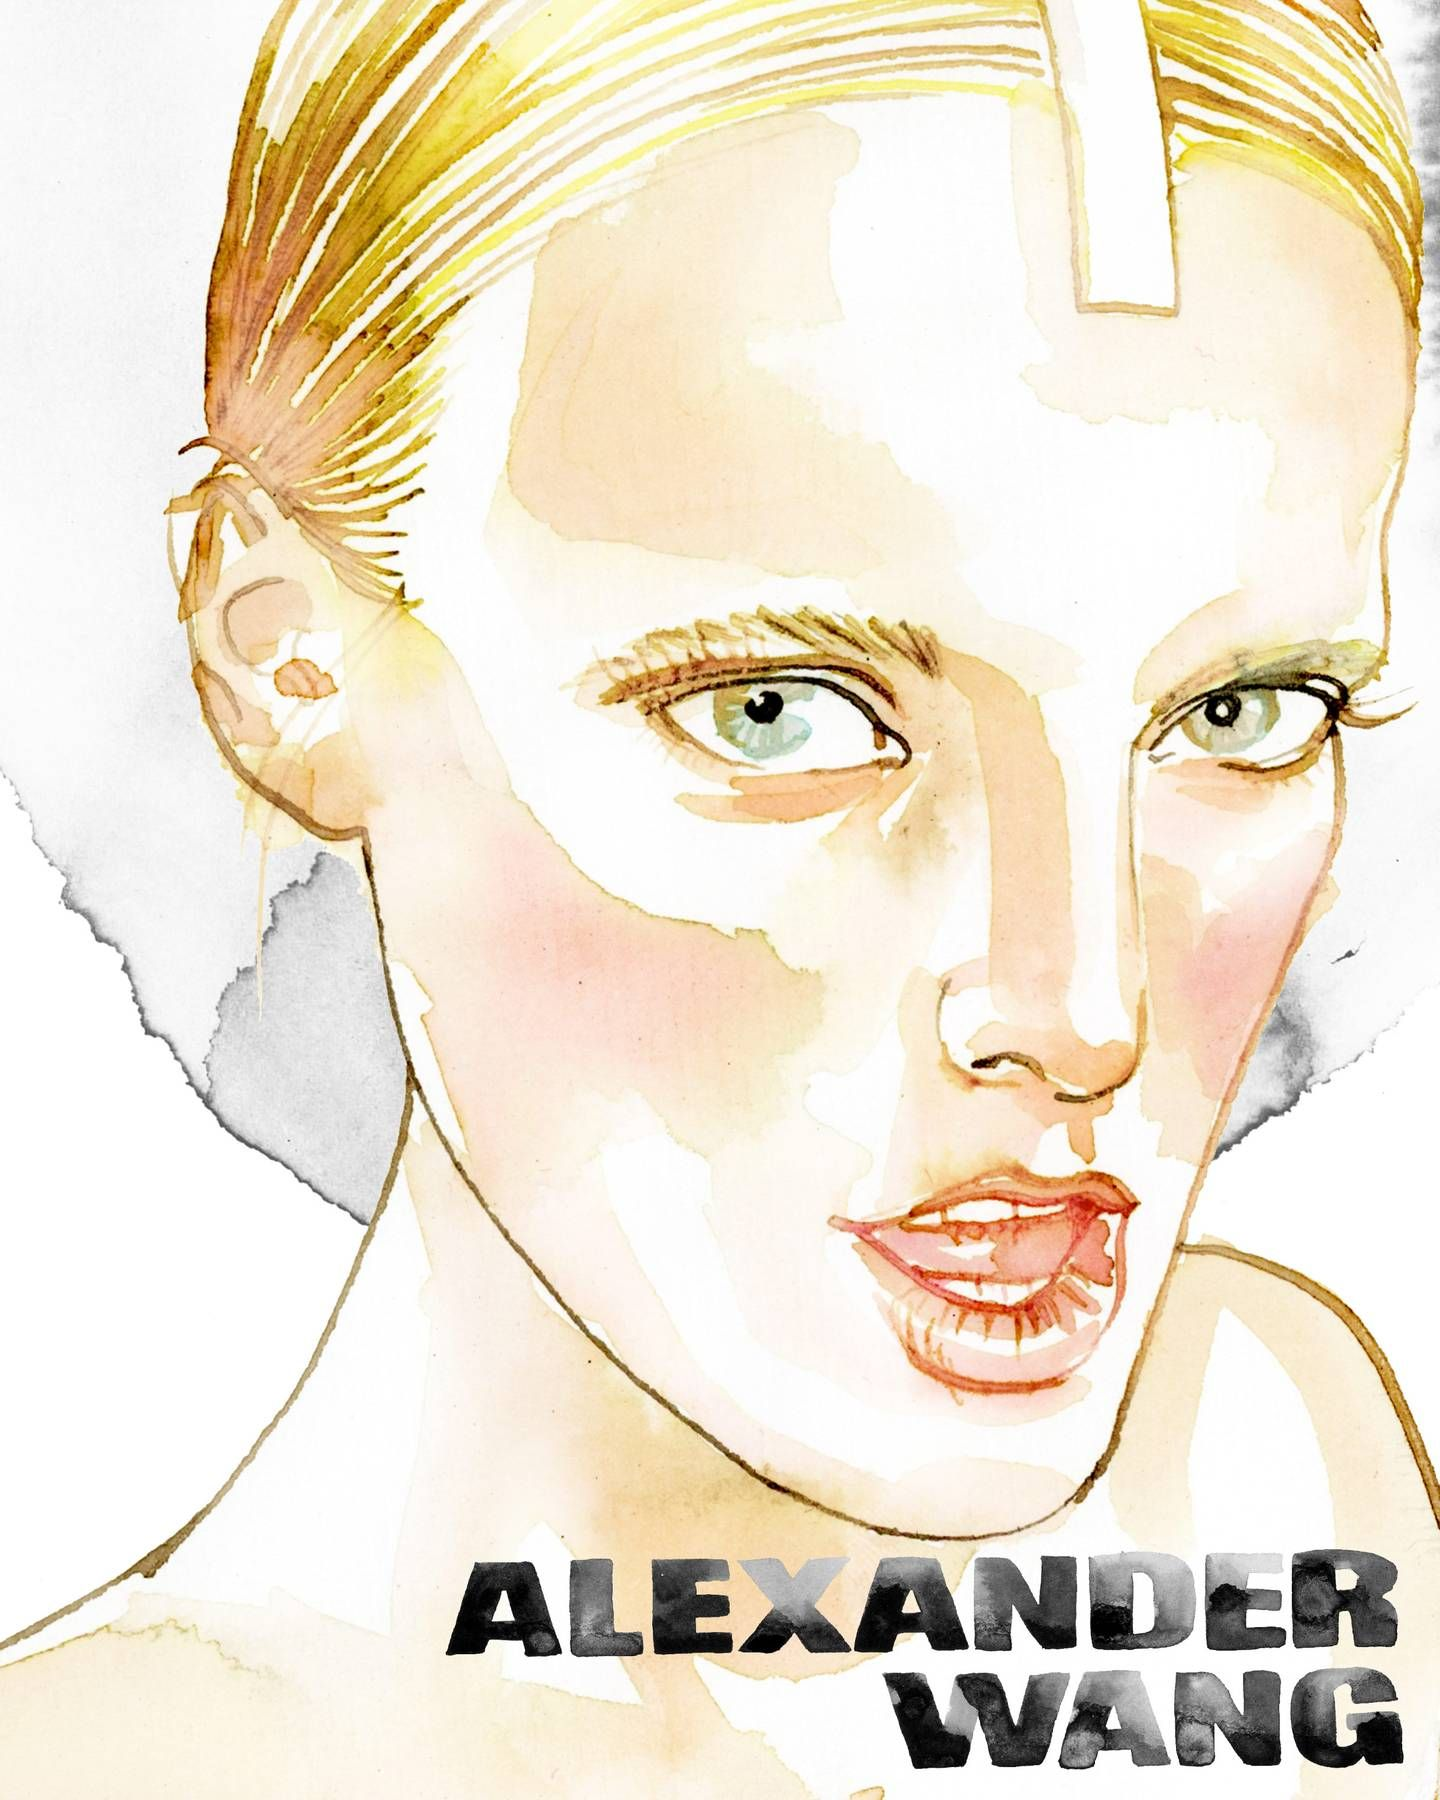 Backstage Illustrations from Alexander Wang - The Cut